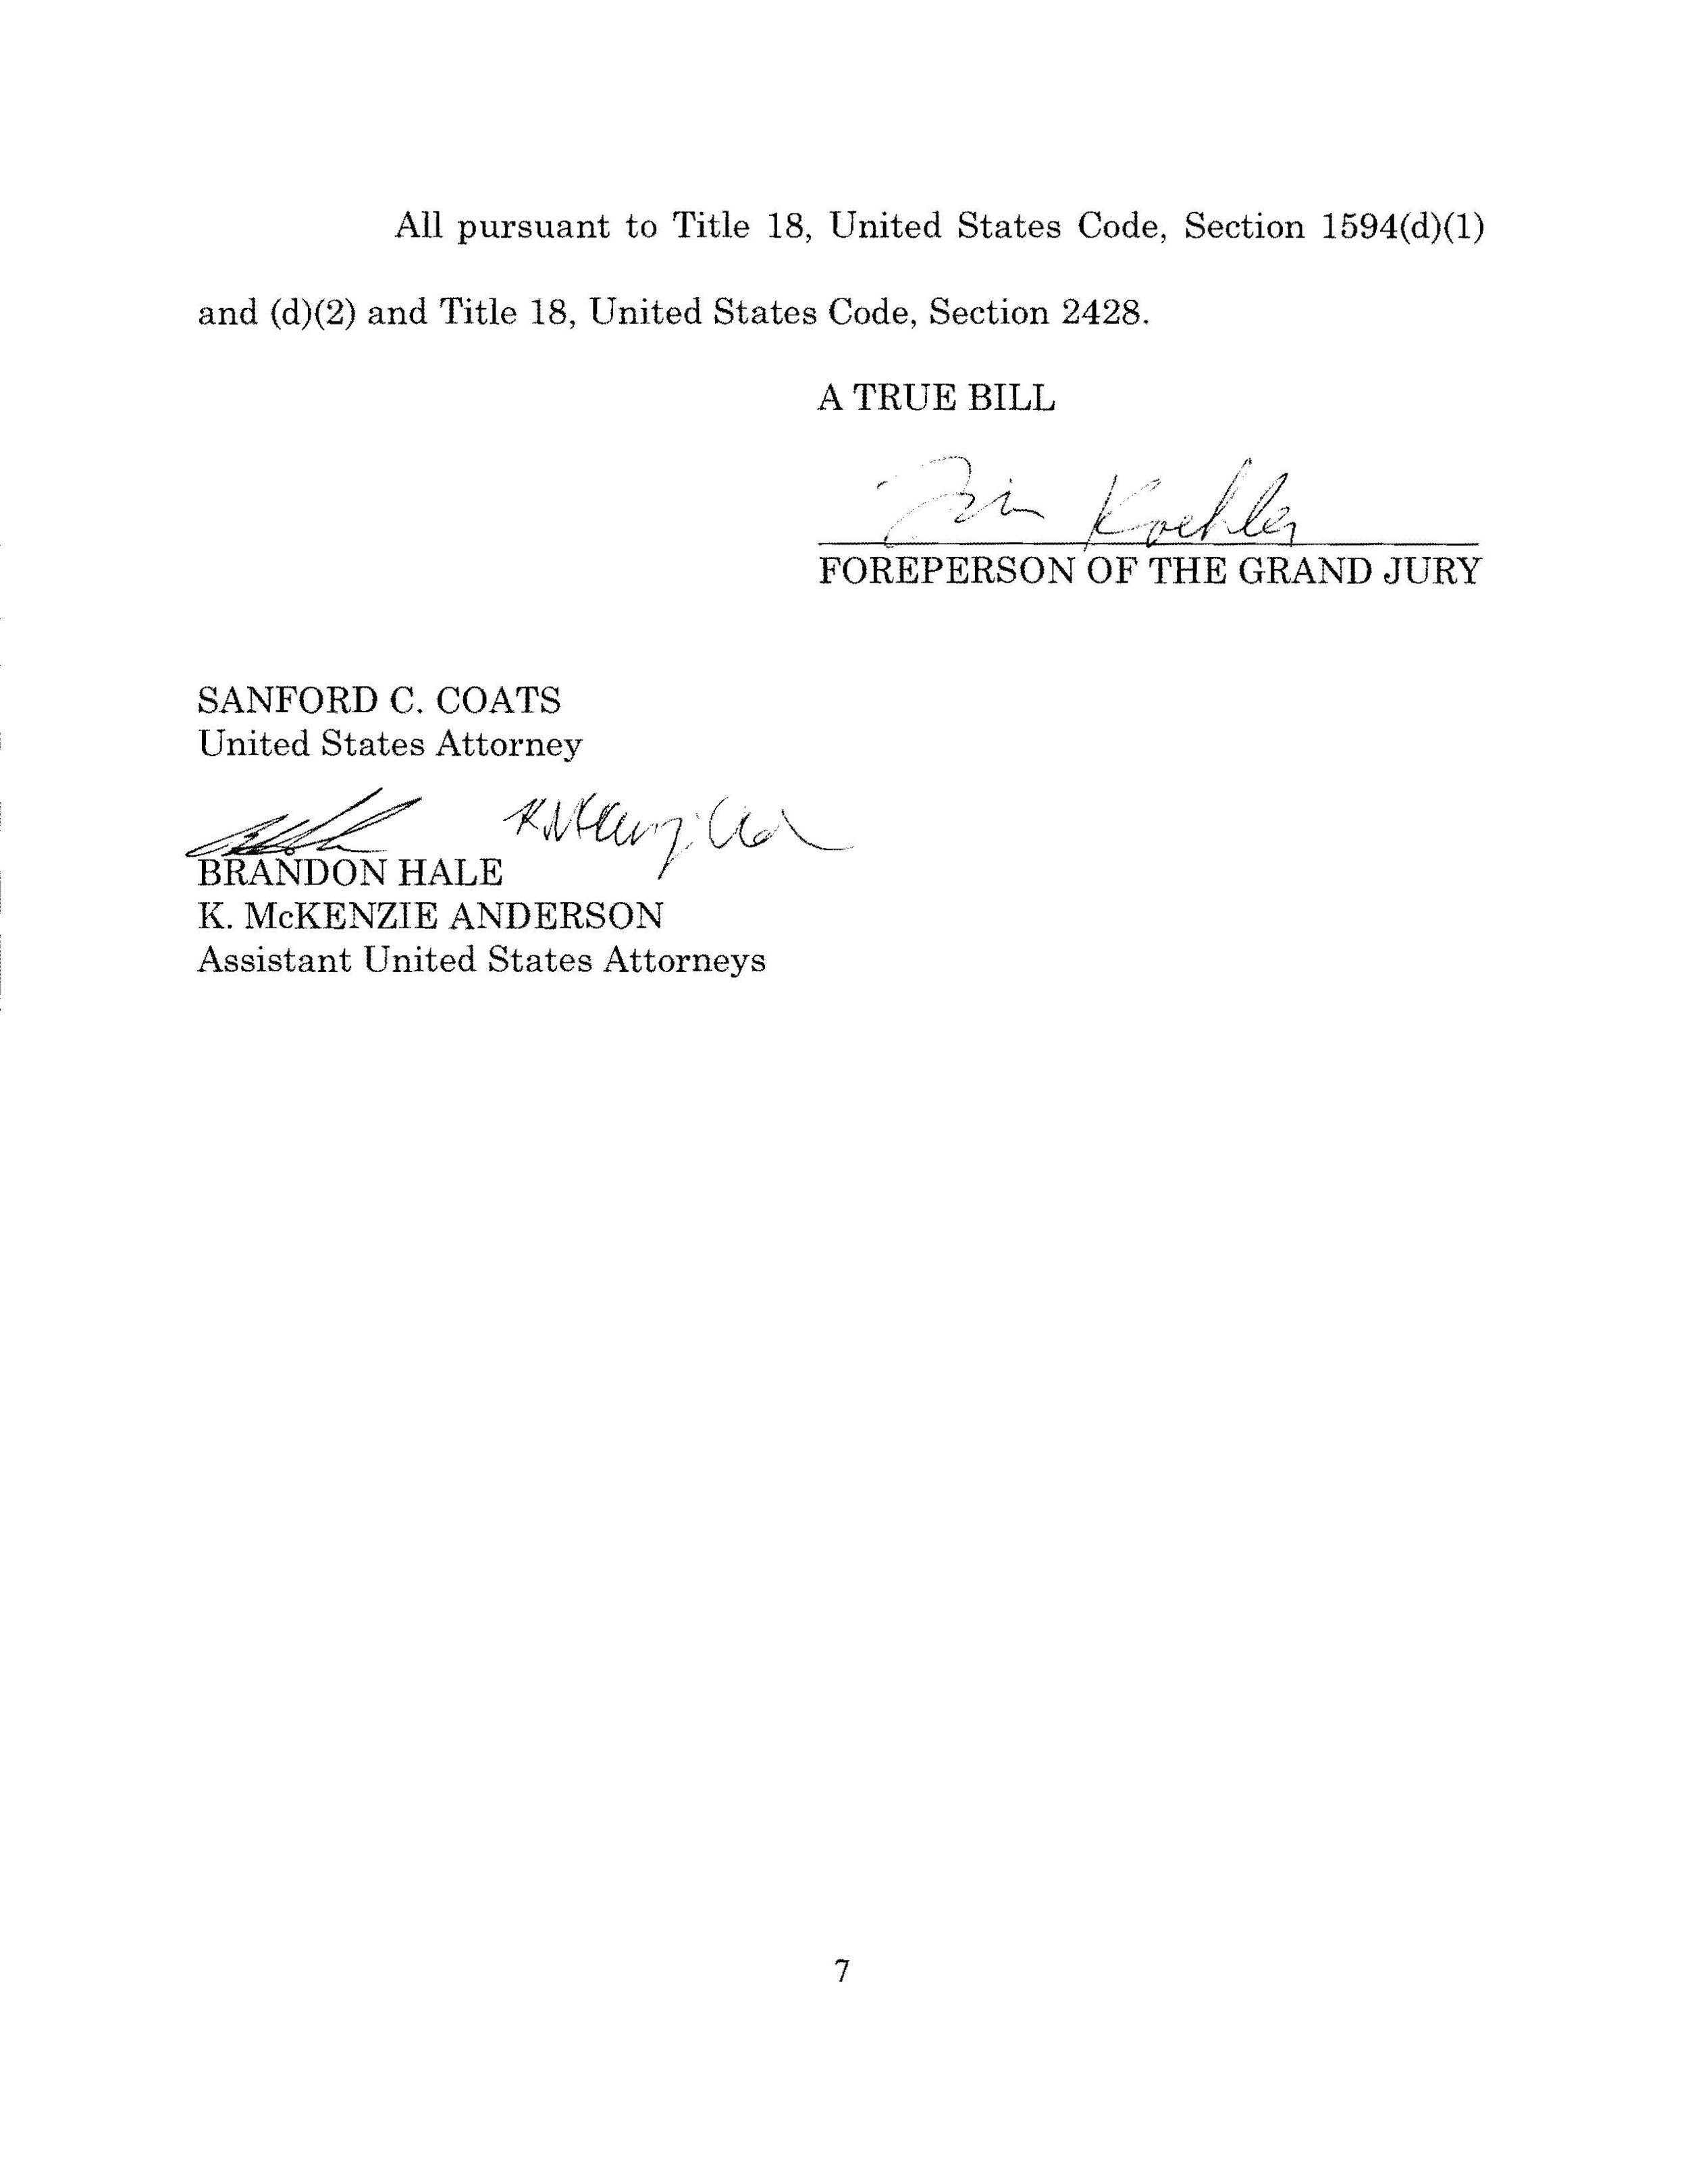 Maurice Johnson Indictment_Page_07_Image_0001.jpg